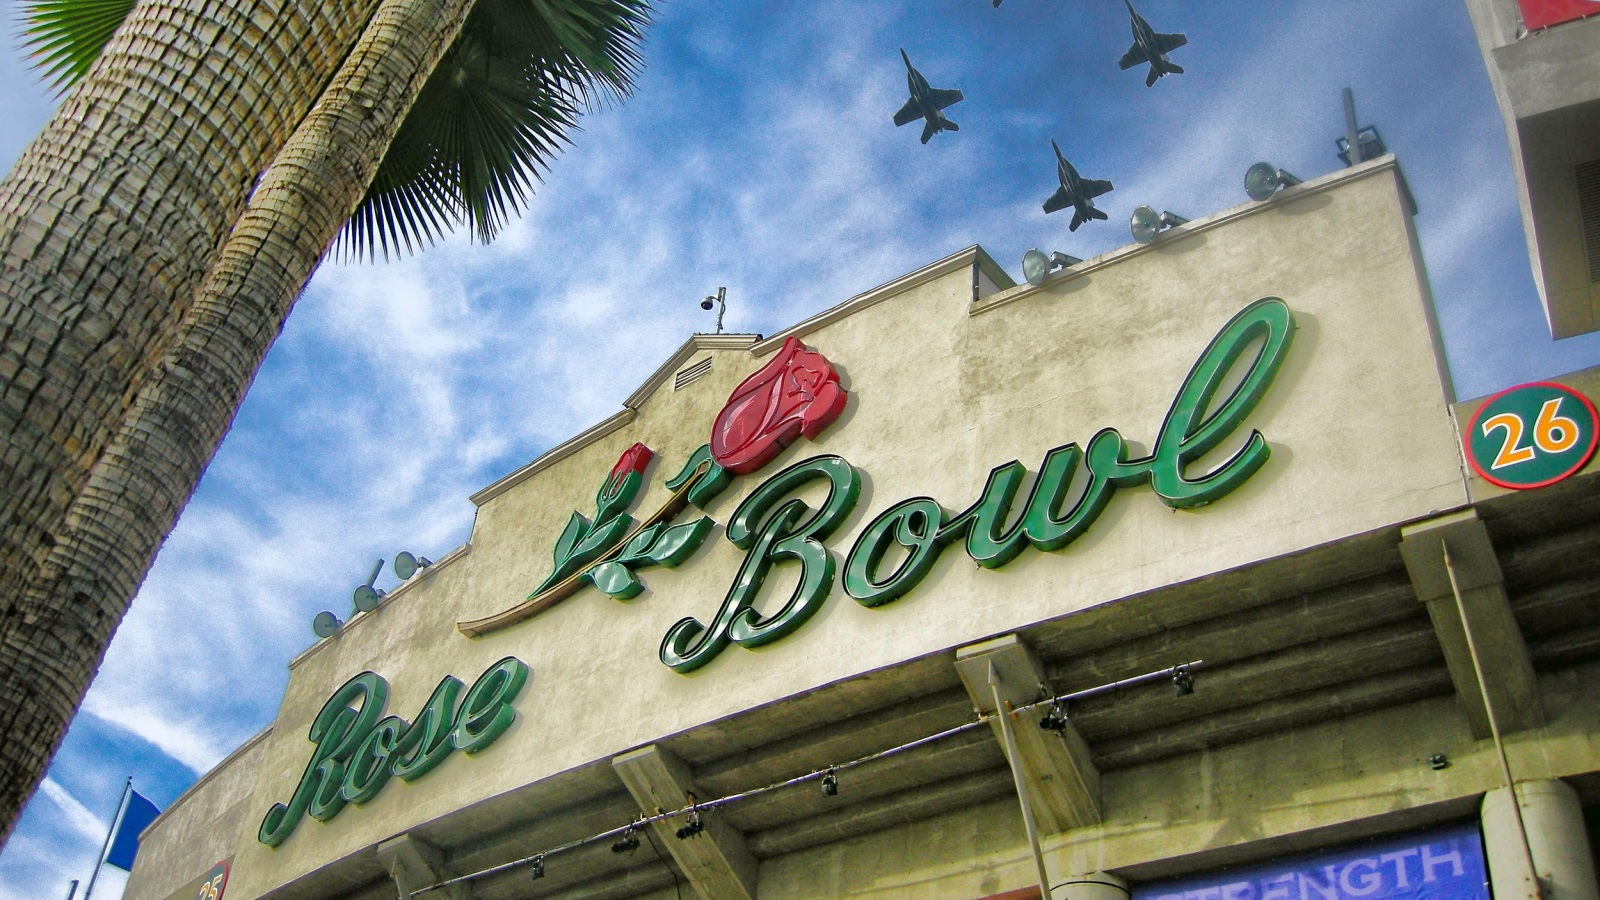 Things to do in Pasadena - Rose Bowl Stadium